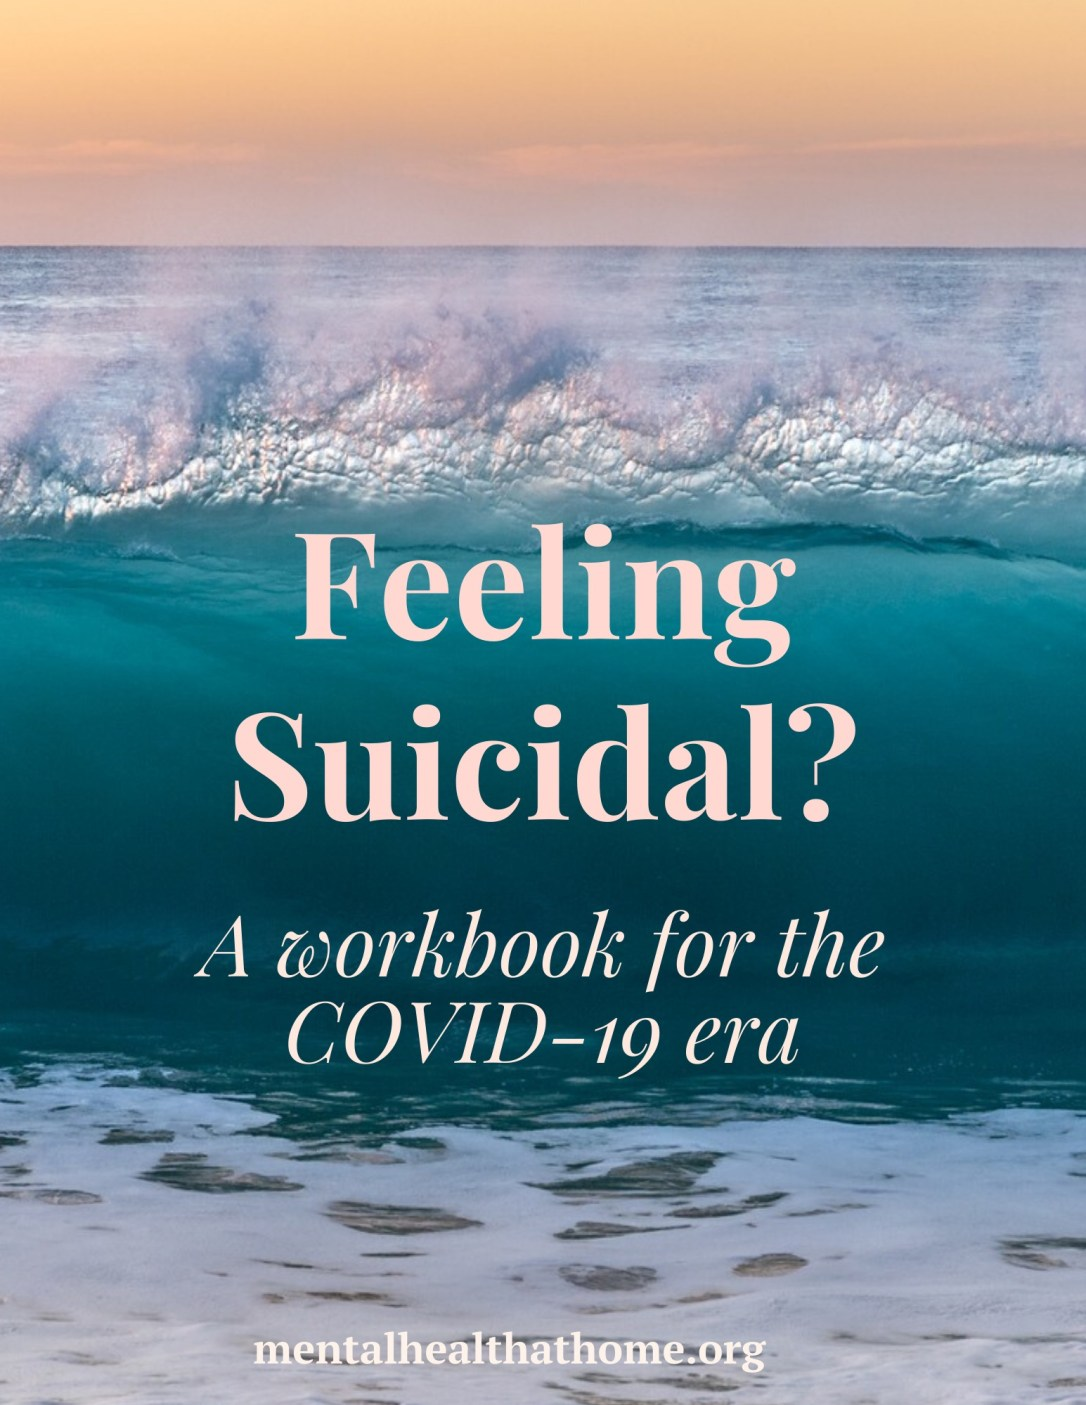 Feeling suicidal? A workbook for the COVID-19 era from Mental Health @ Home